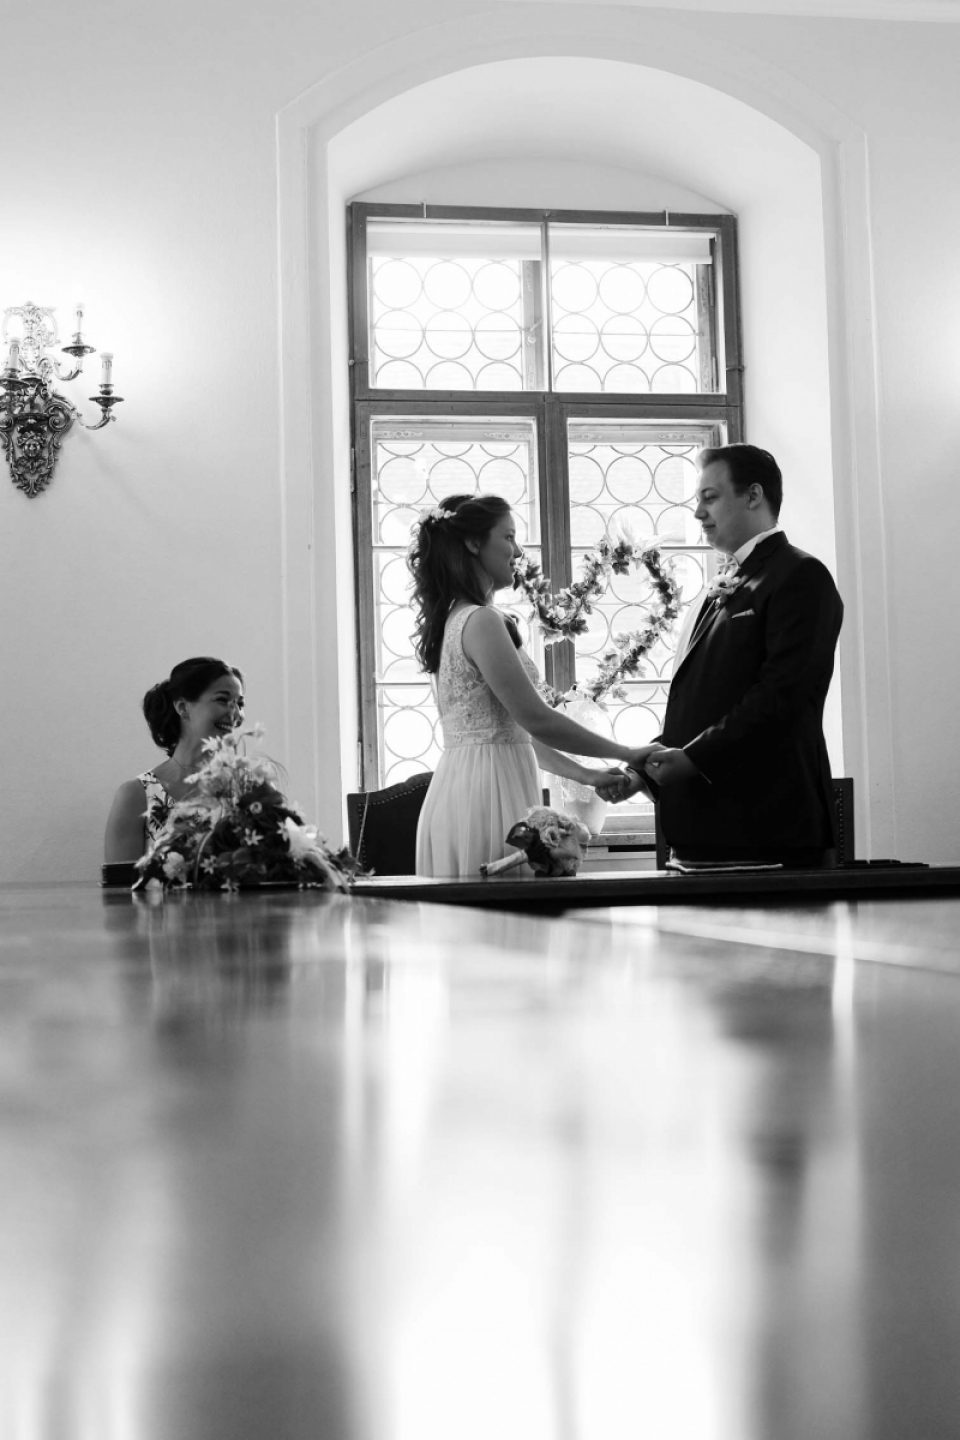 Wedding Photography from the Ceremony at the Registry office Füssen, Germany